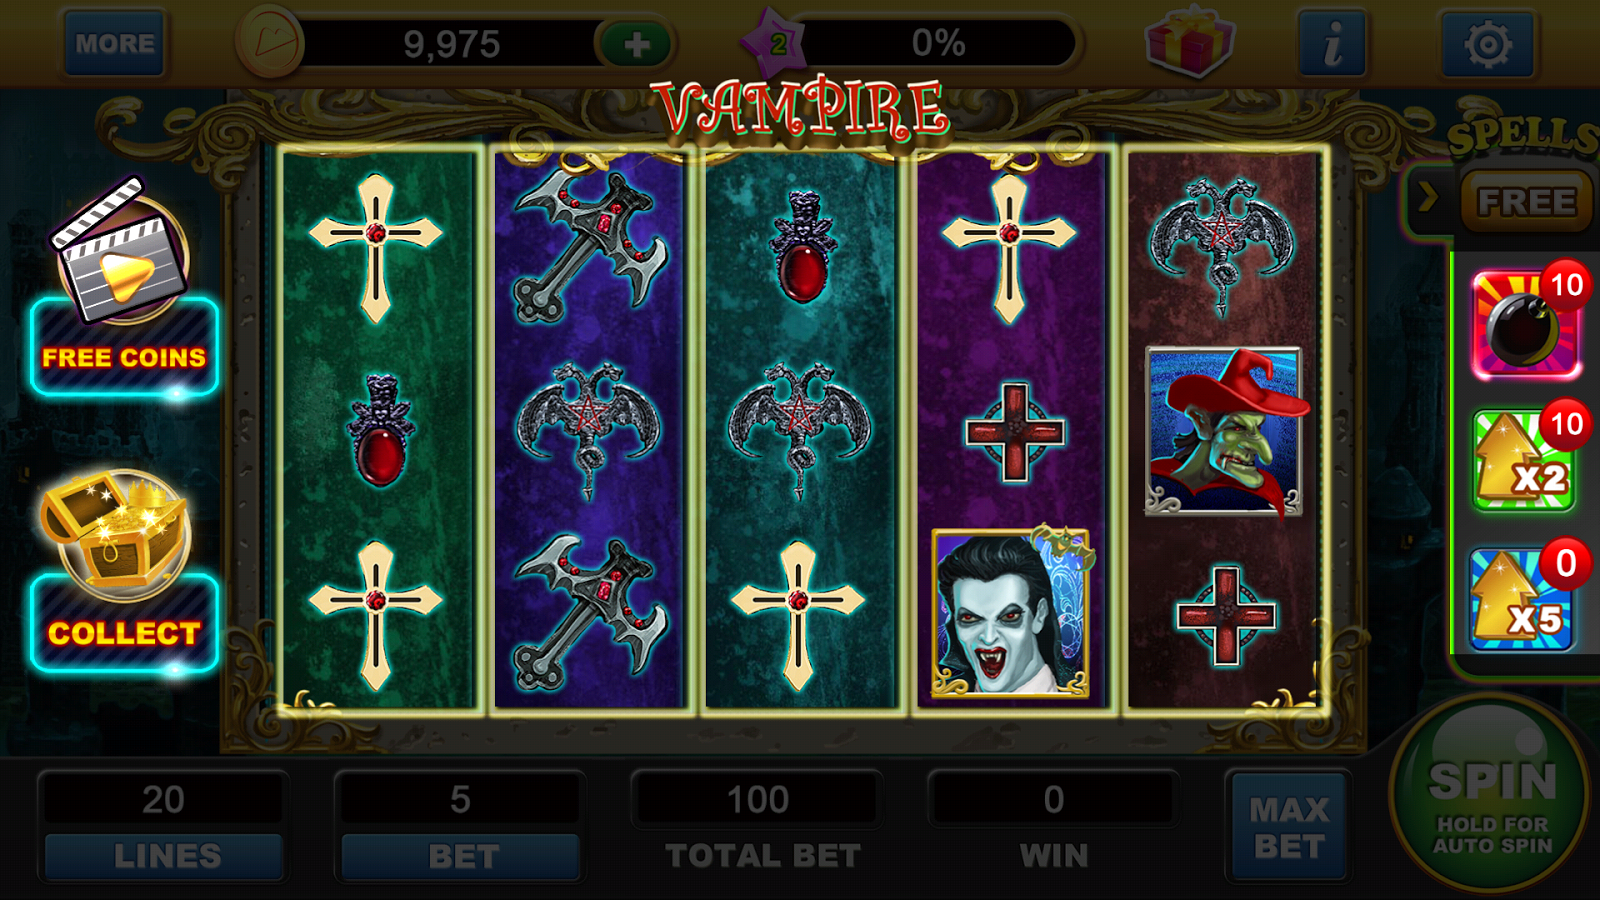 Vampire Fortune Slot Machine - Play Online Slots for Free